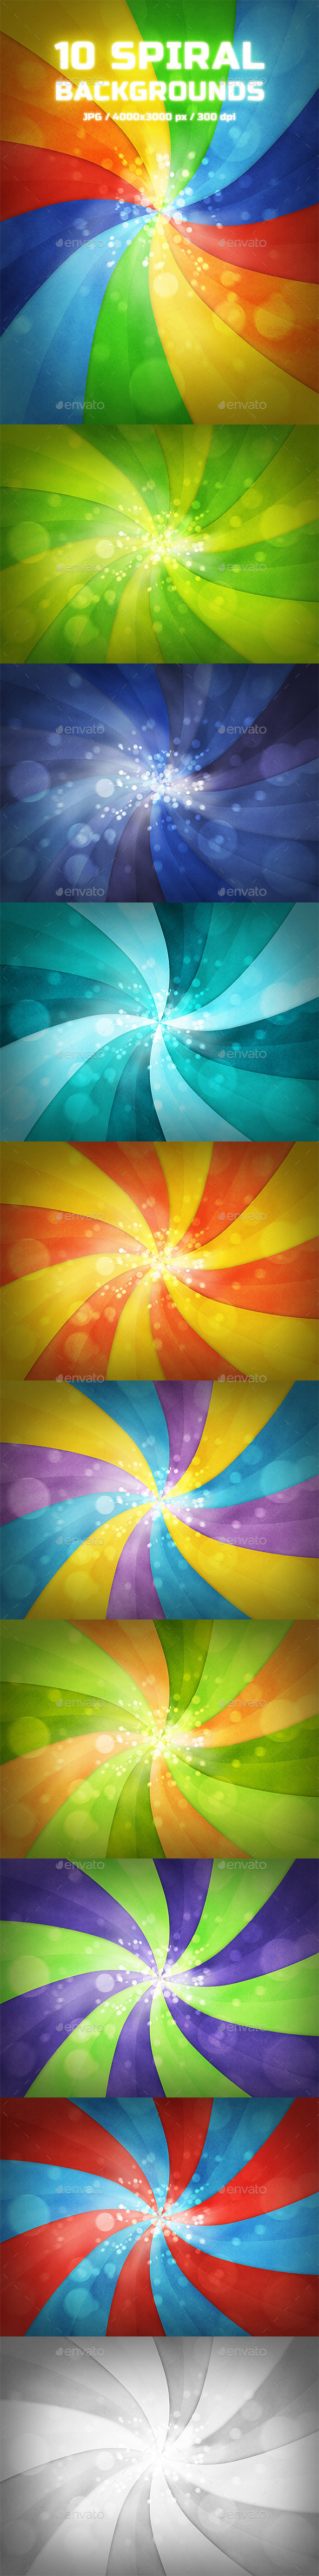 GraphicRiver 10 Spiral Backgrounds 9630901